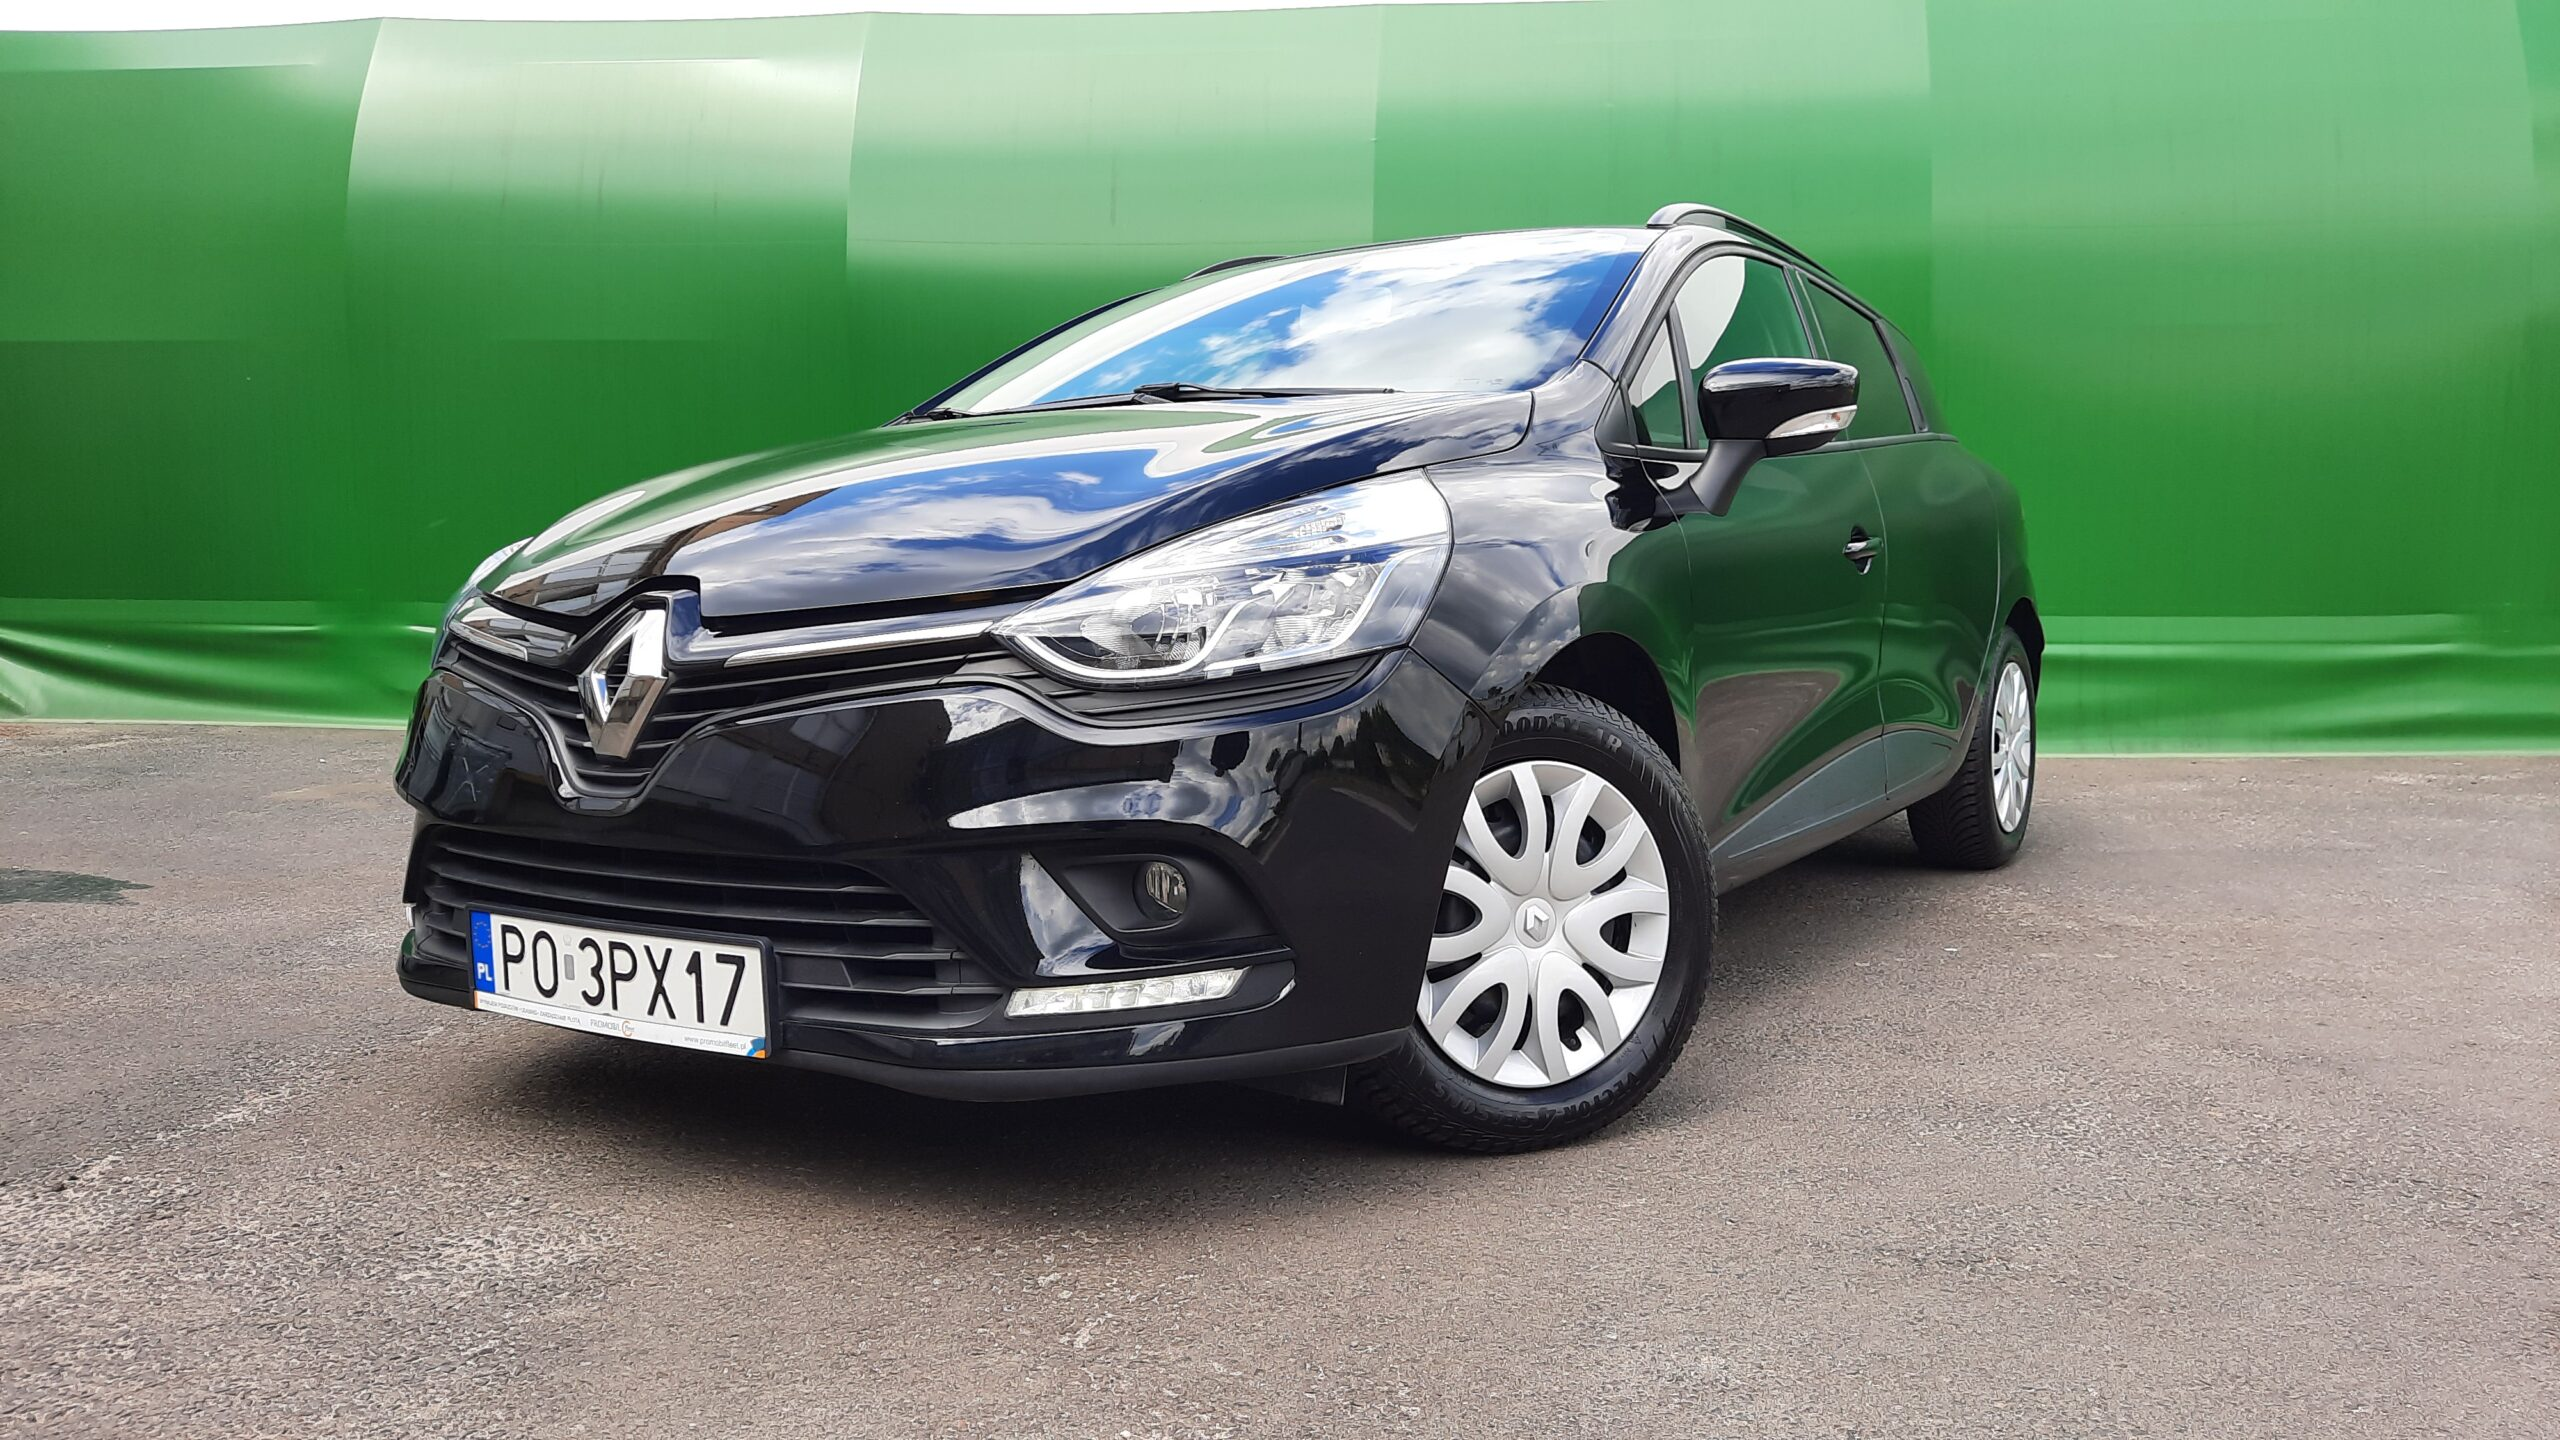 RENAULT Clio 0.9 Energy TCe Alize